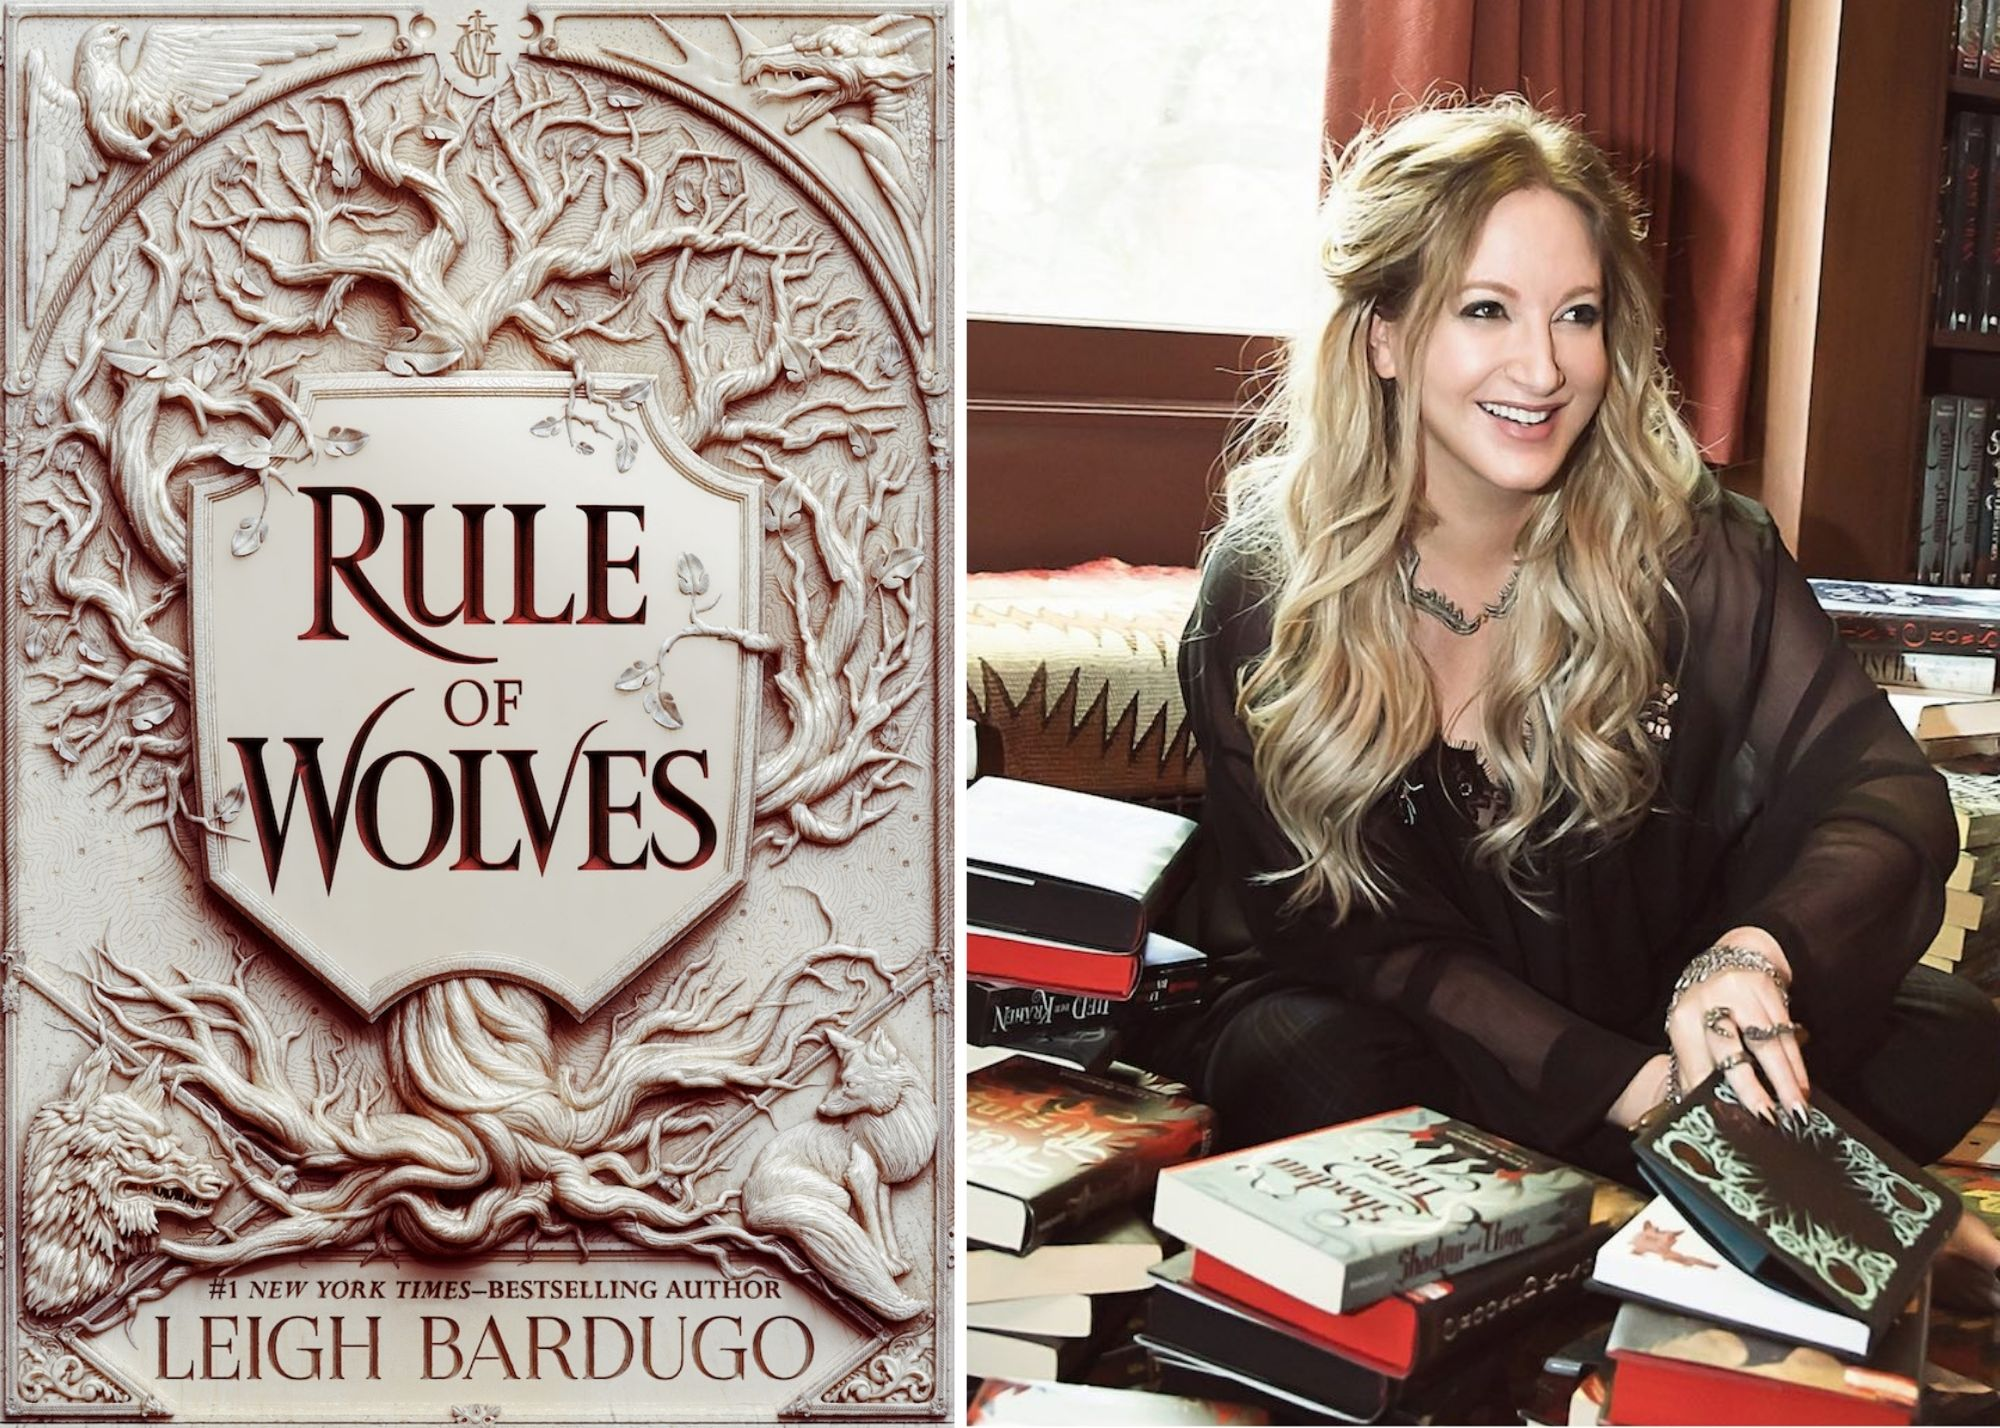 Book Review: 'Rule of Wolves' by Leigh Bardugo